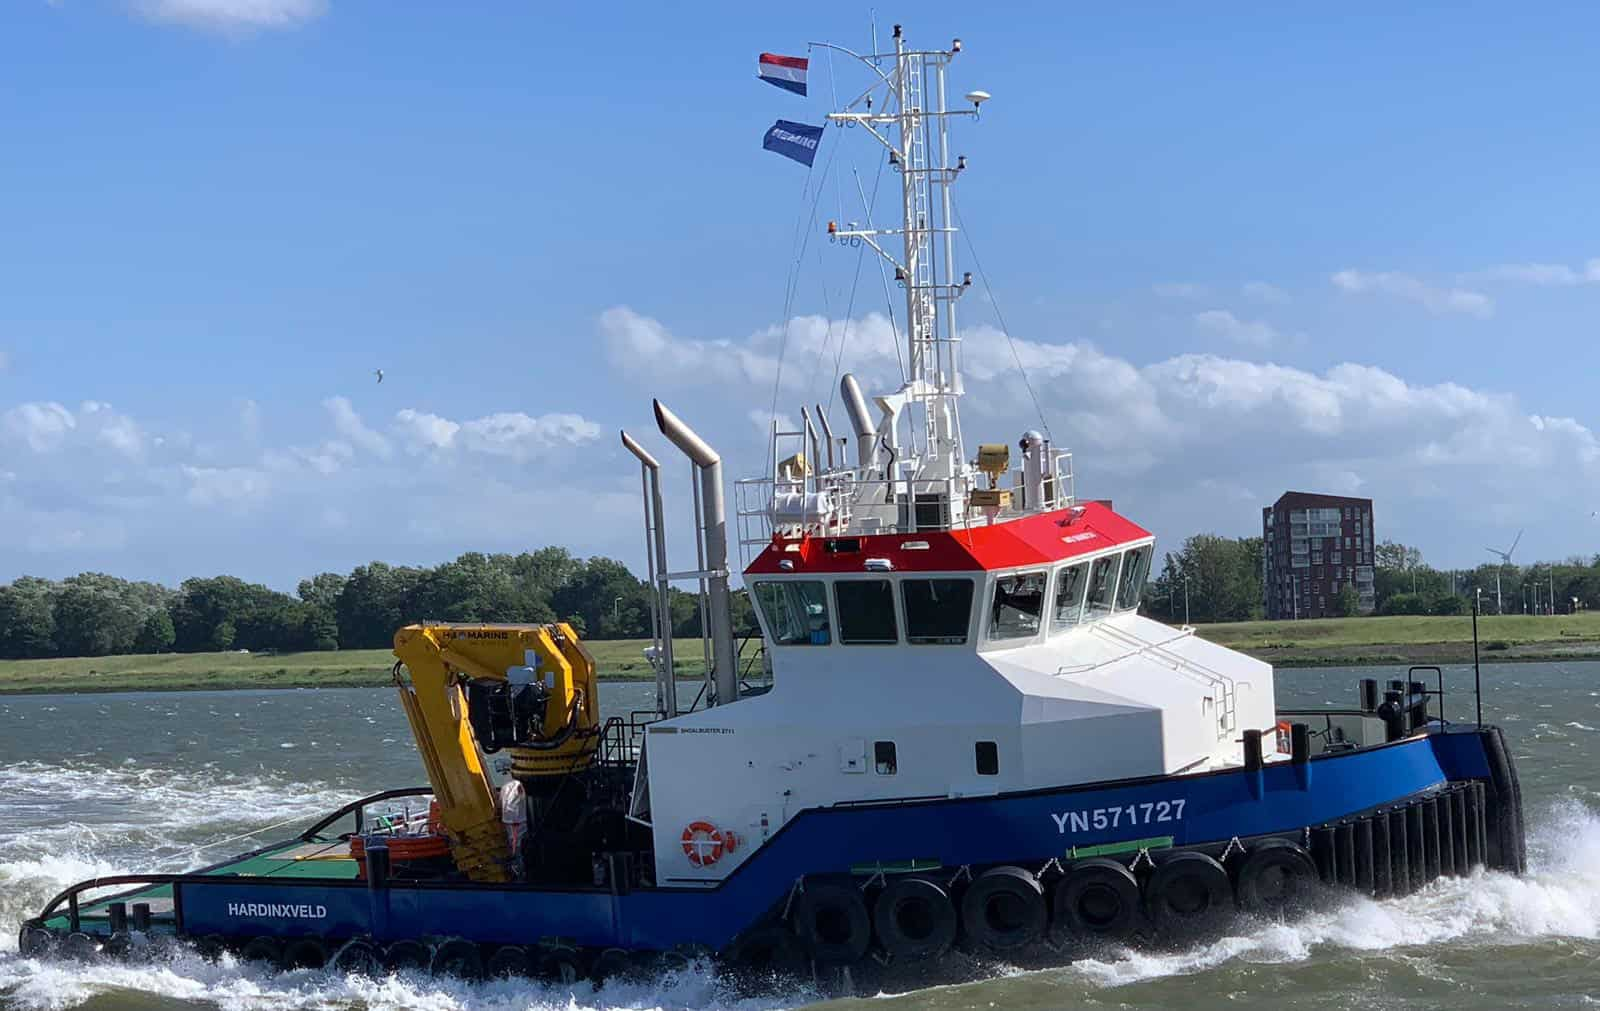 Hardinxveld Ship Delivery TOS